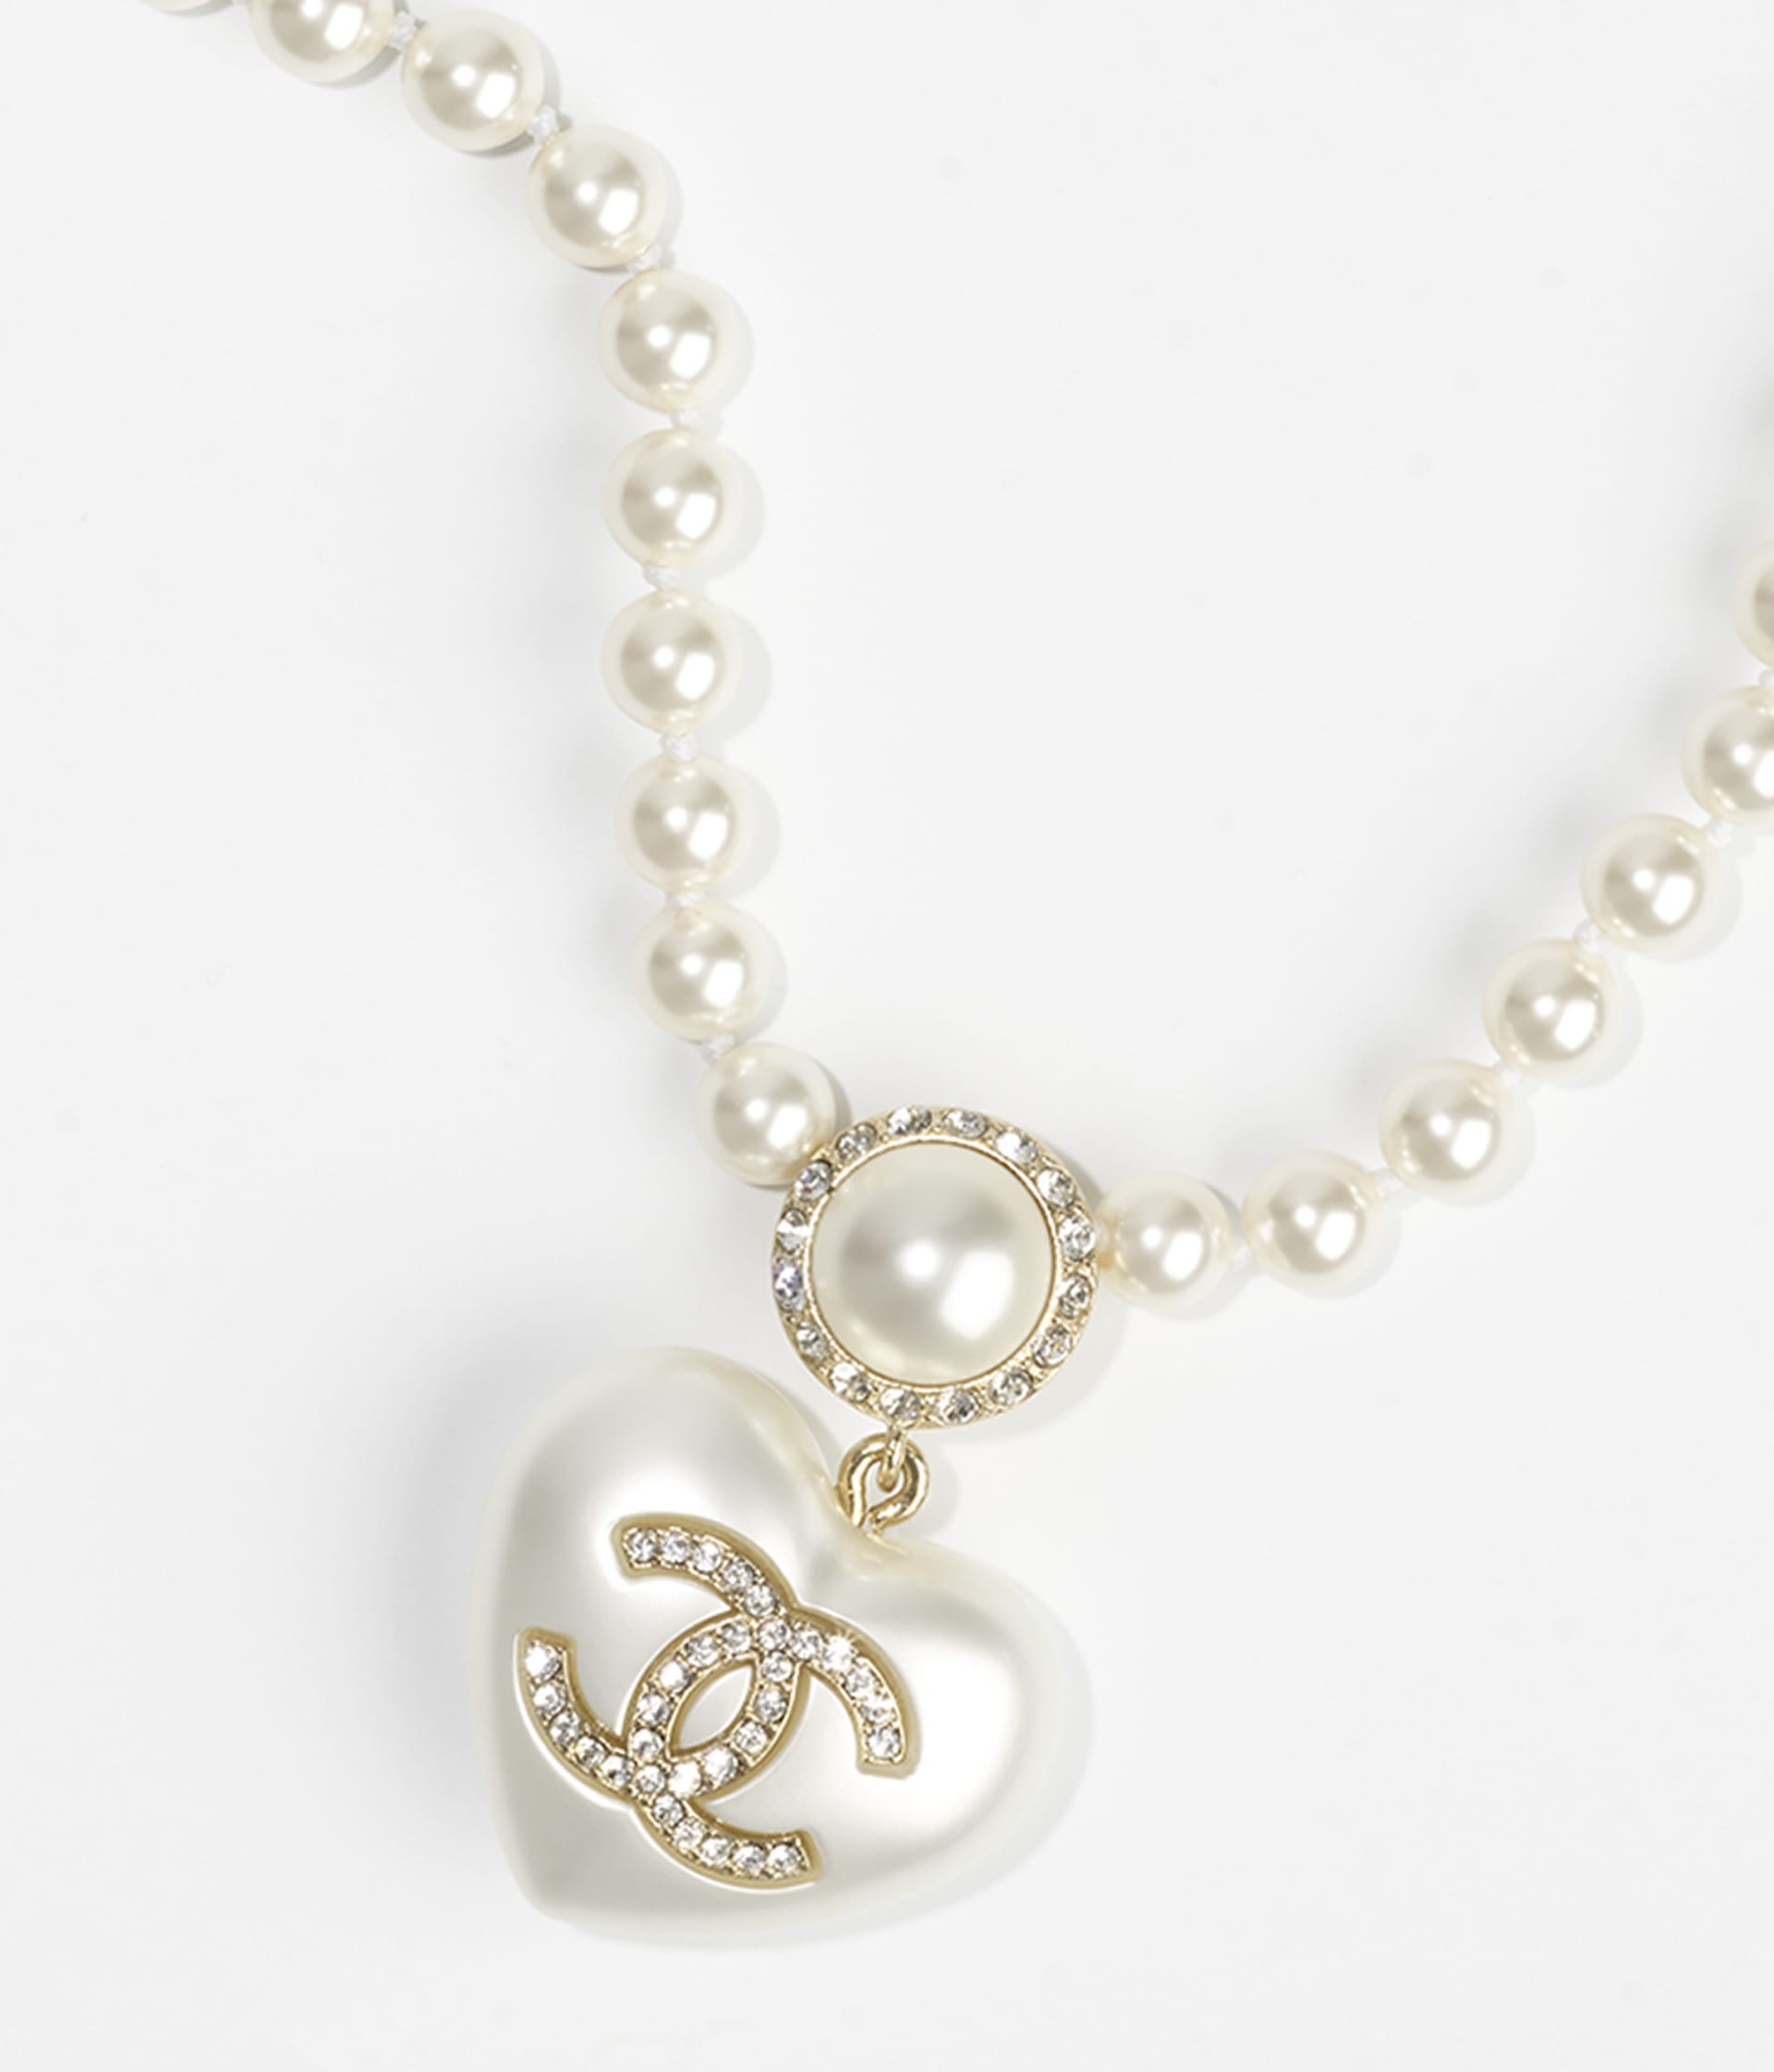 image 3 - Necklace - Metal, Resin, Imitation Pearls, Glass Pearls & Strass - Gold, Pearly White & Crystal